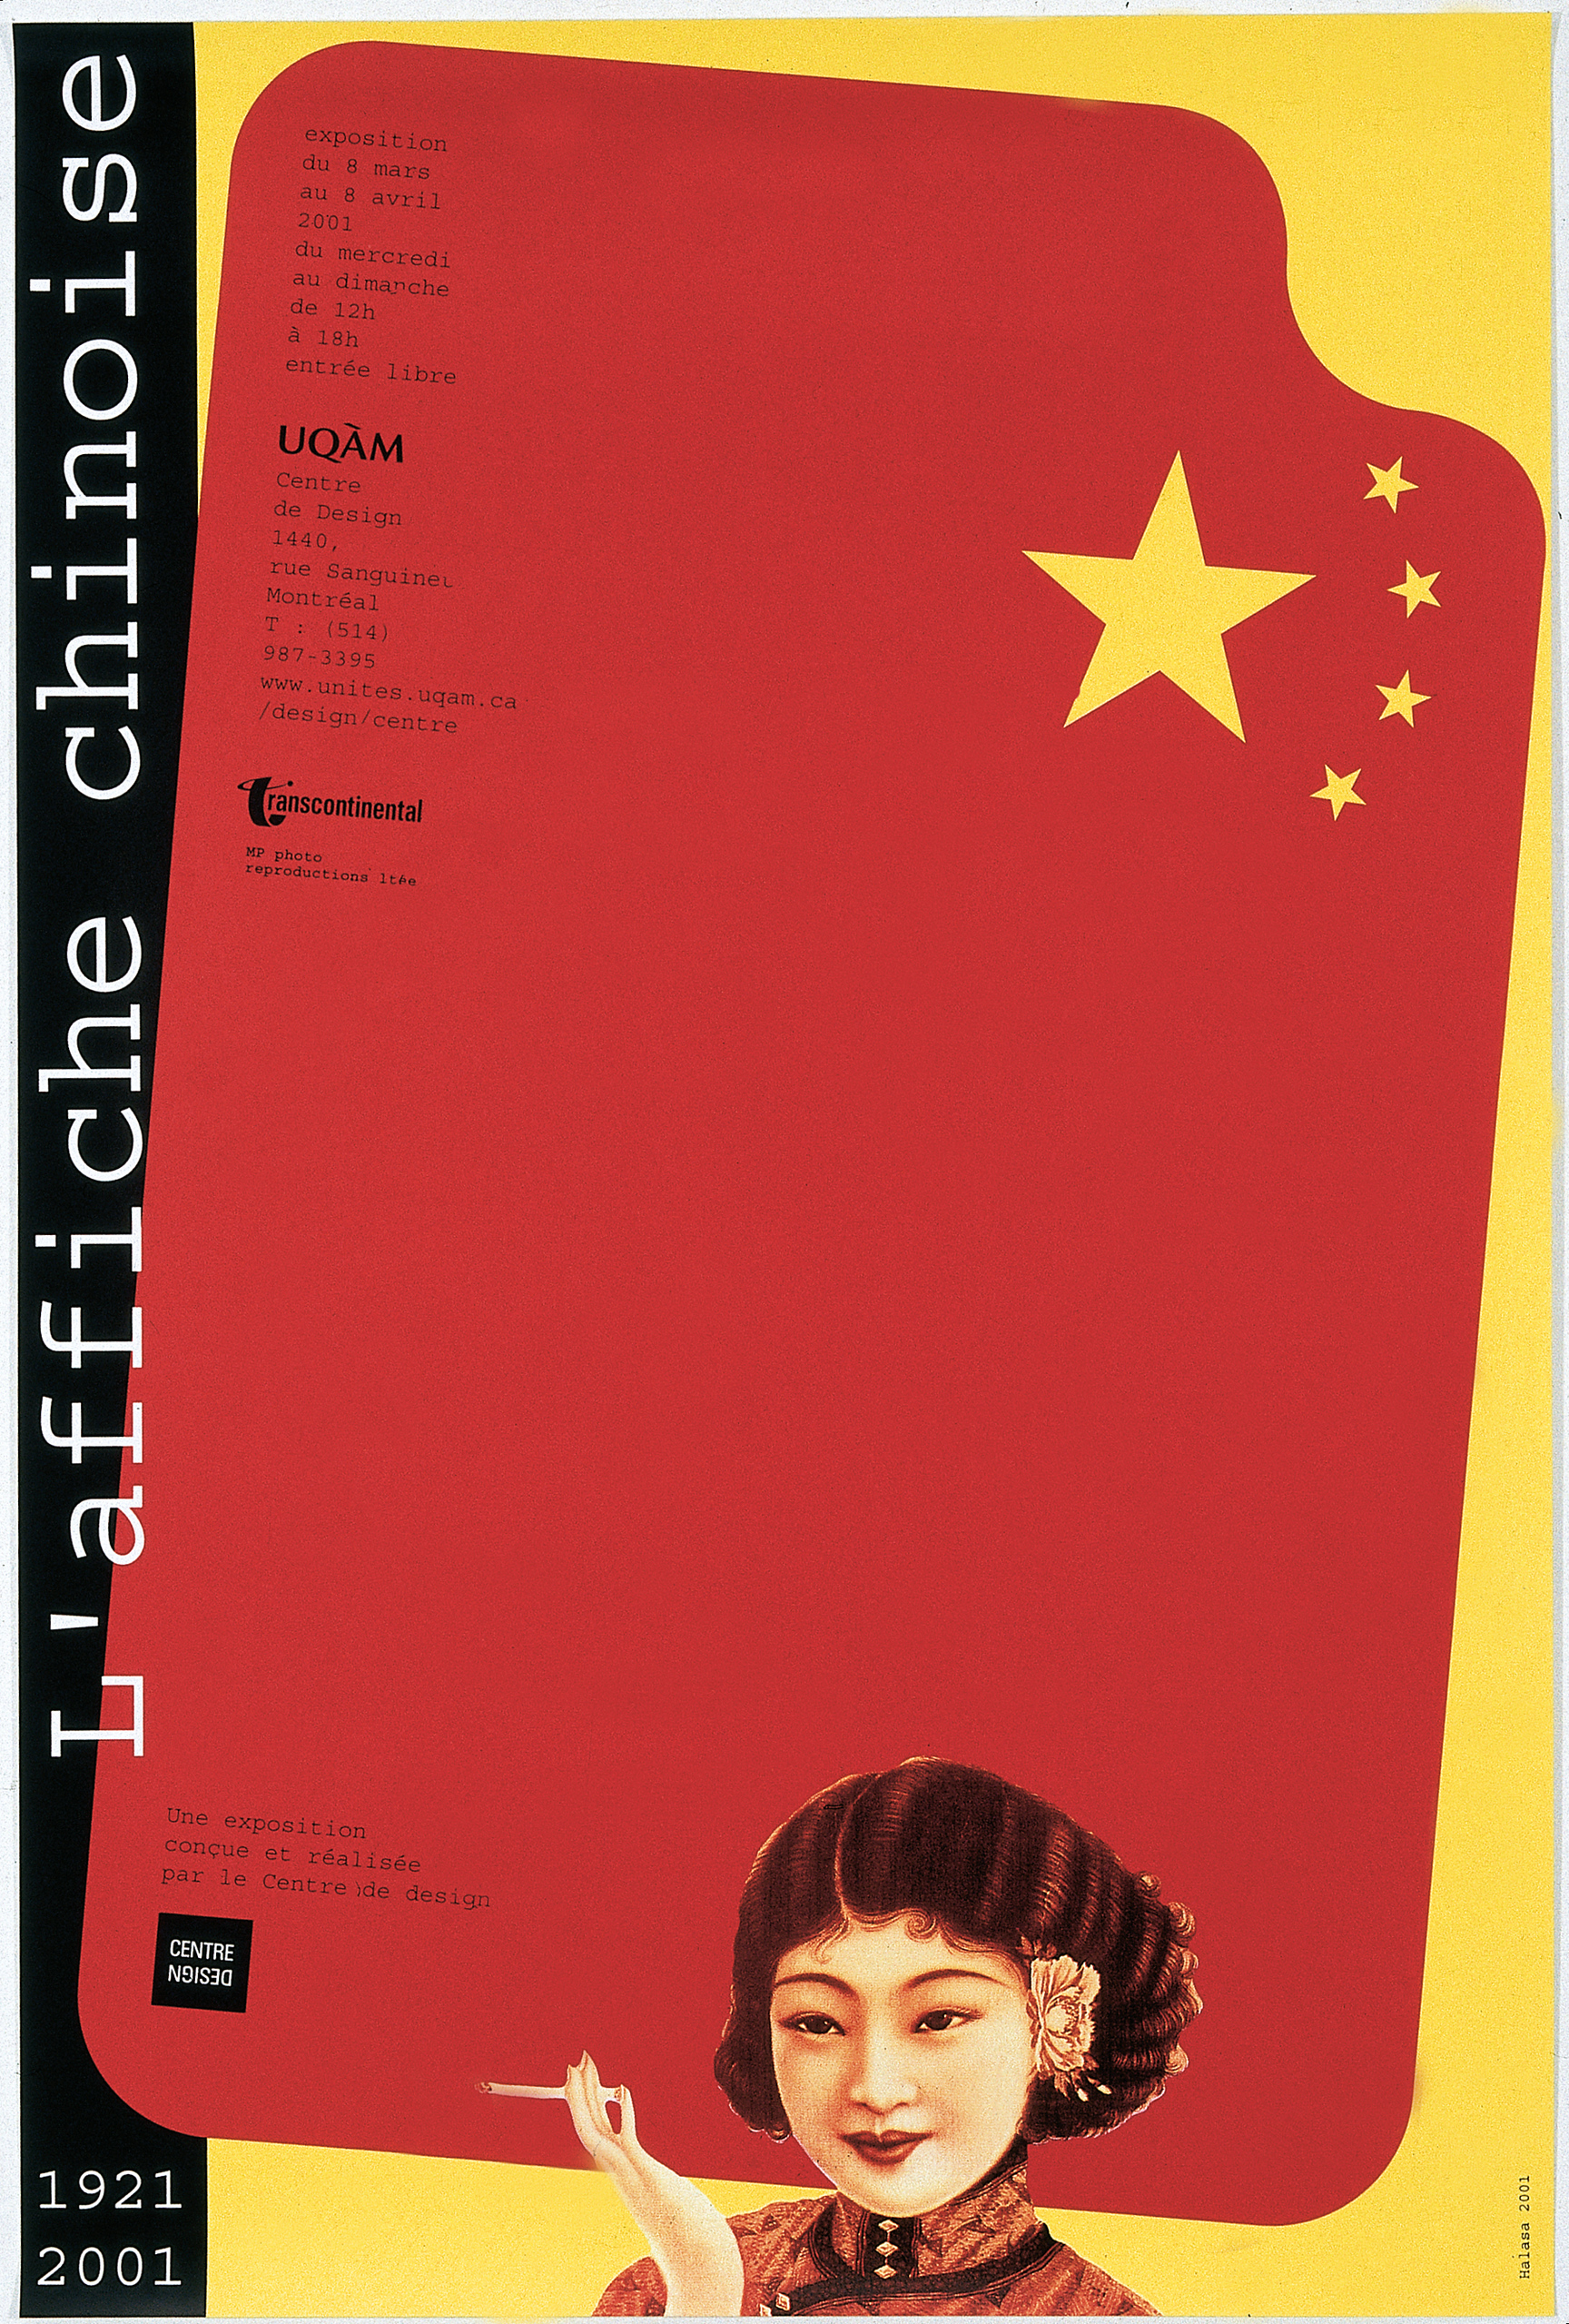 2001 - Exposition - L'affiche chinoise 1921 2001 ©Alfred Halasa